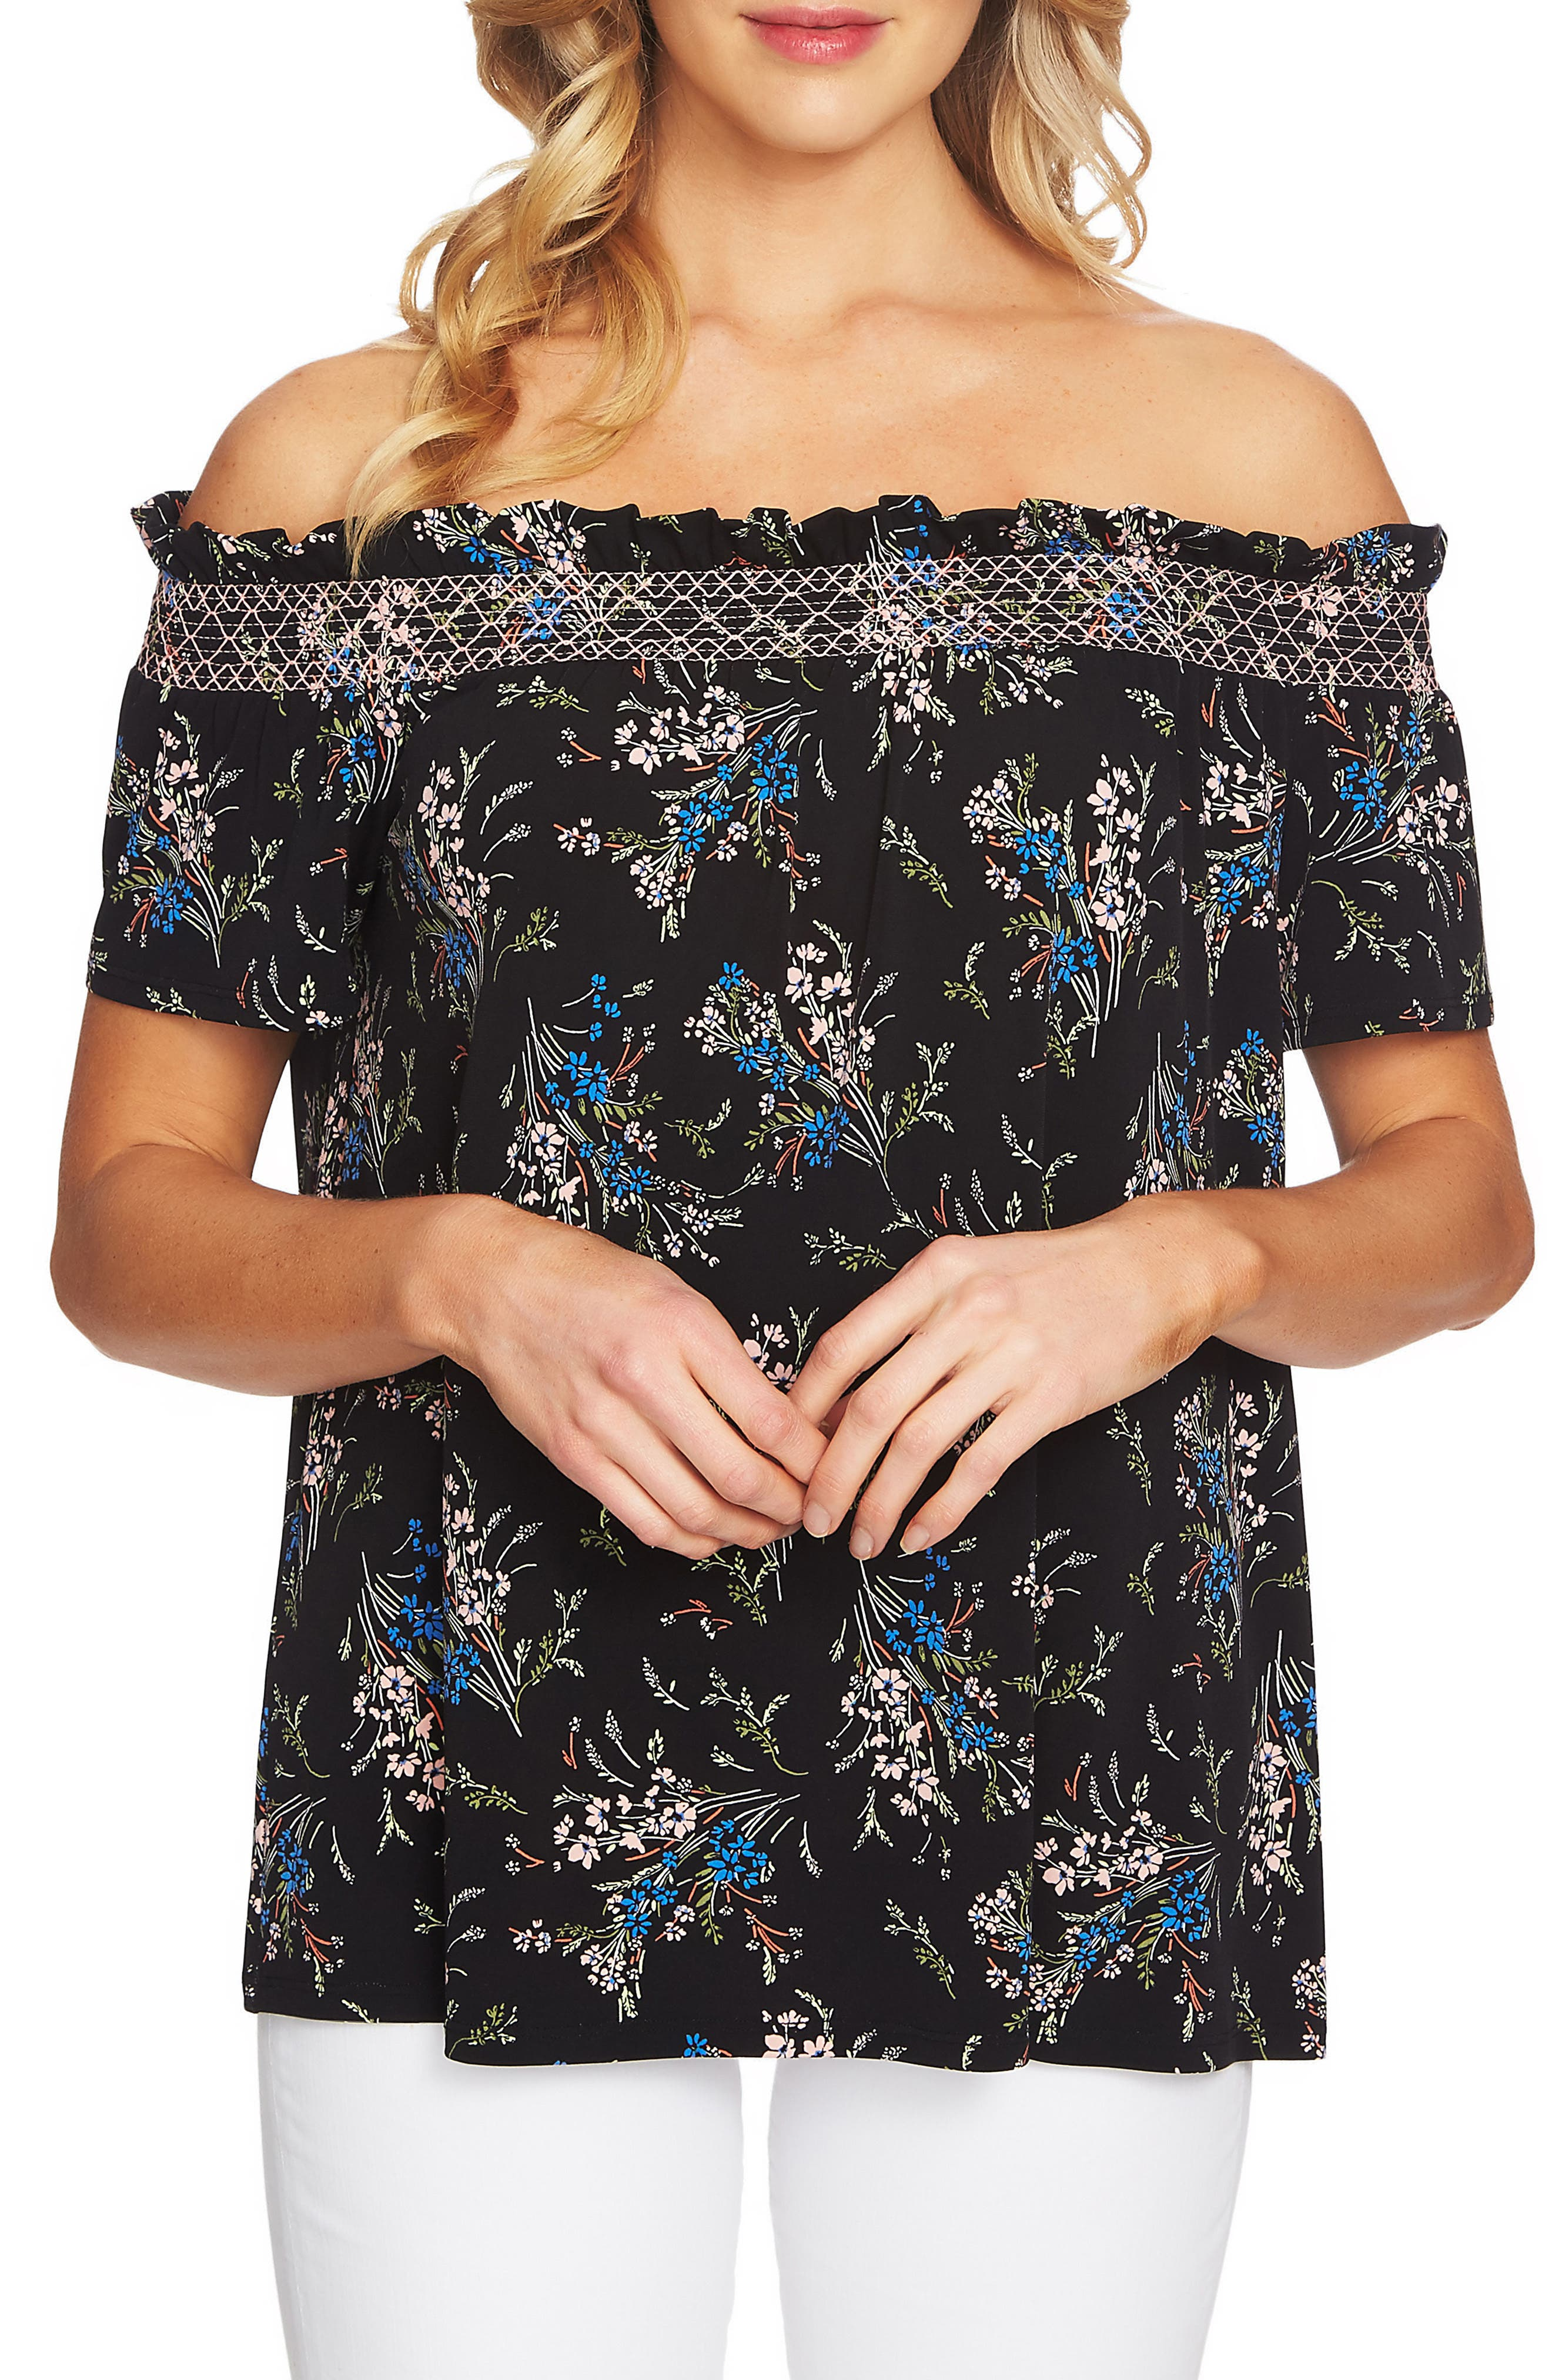 Off the Shoulder Dancing Top,                             Main thumbnail 1, color,                             006